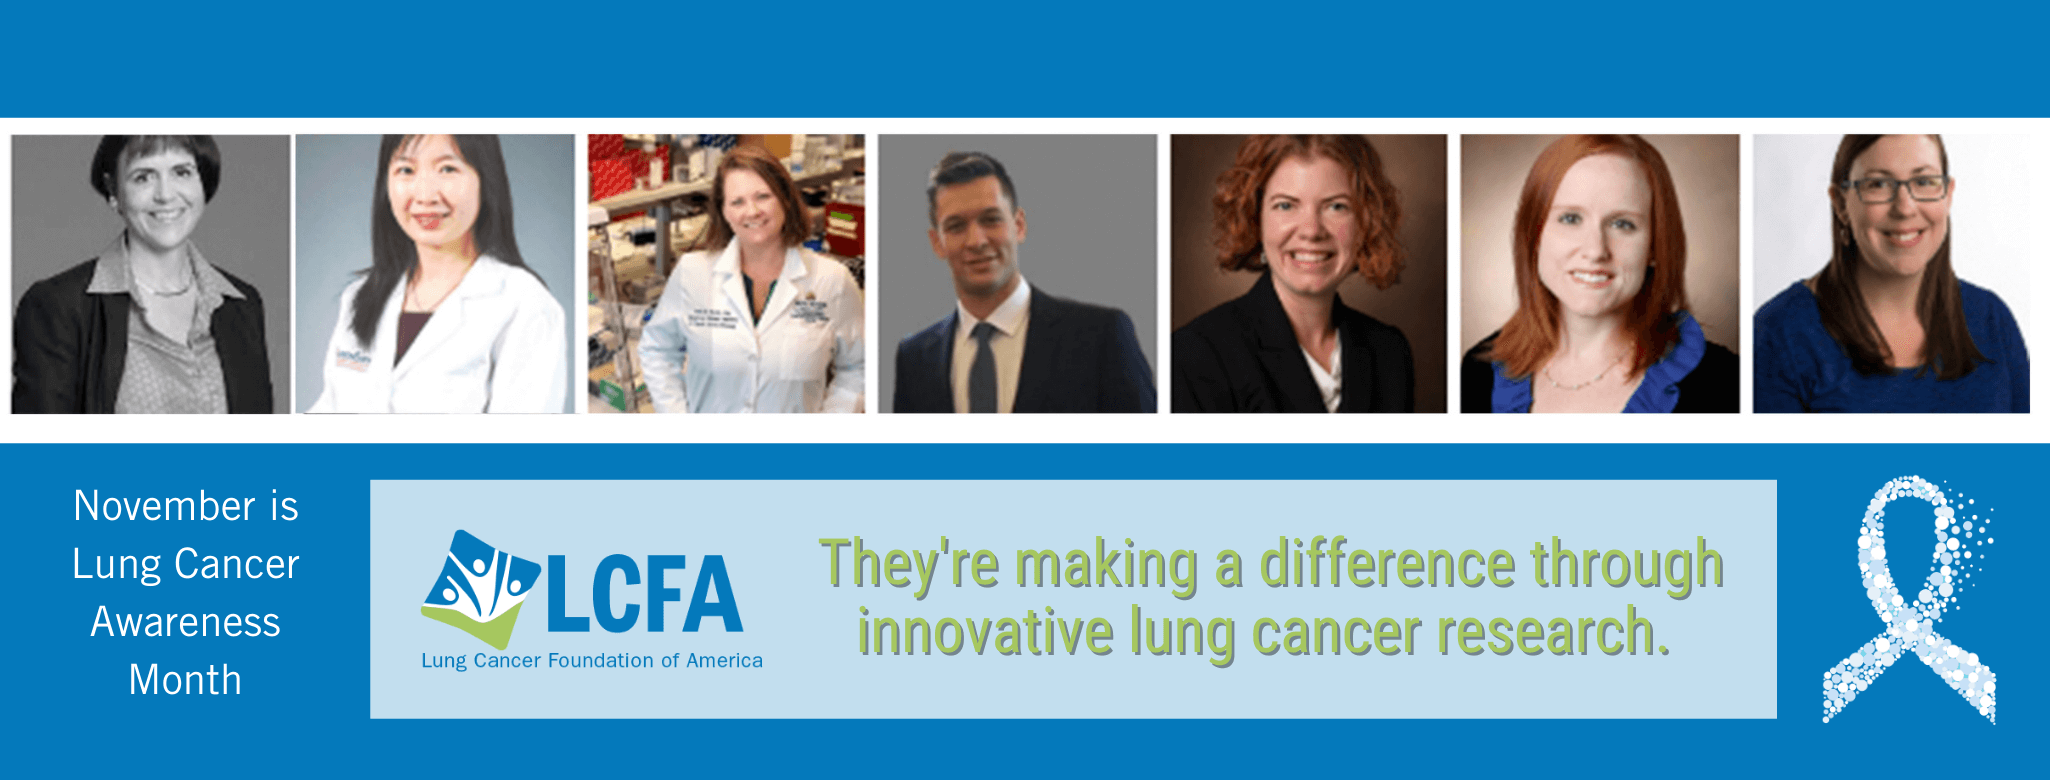 Photo of LCFA lung cancer grant researcher